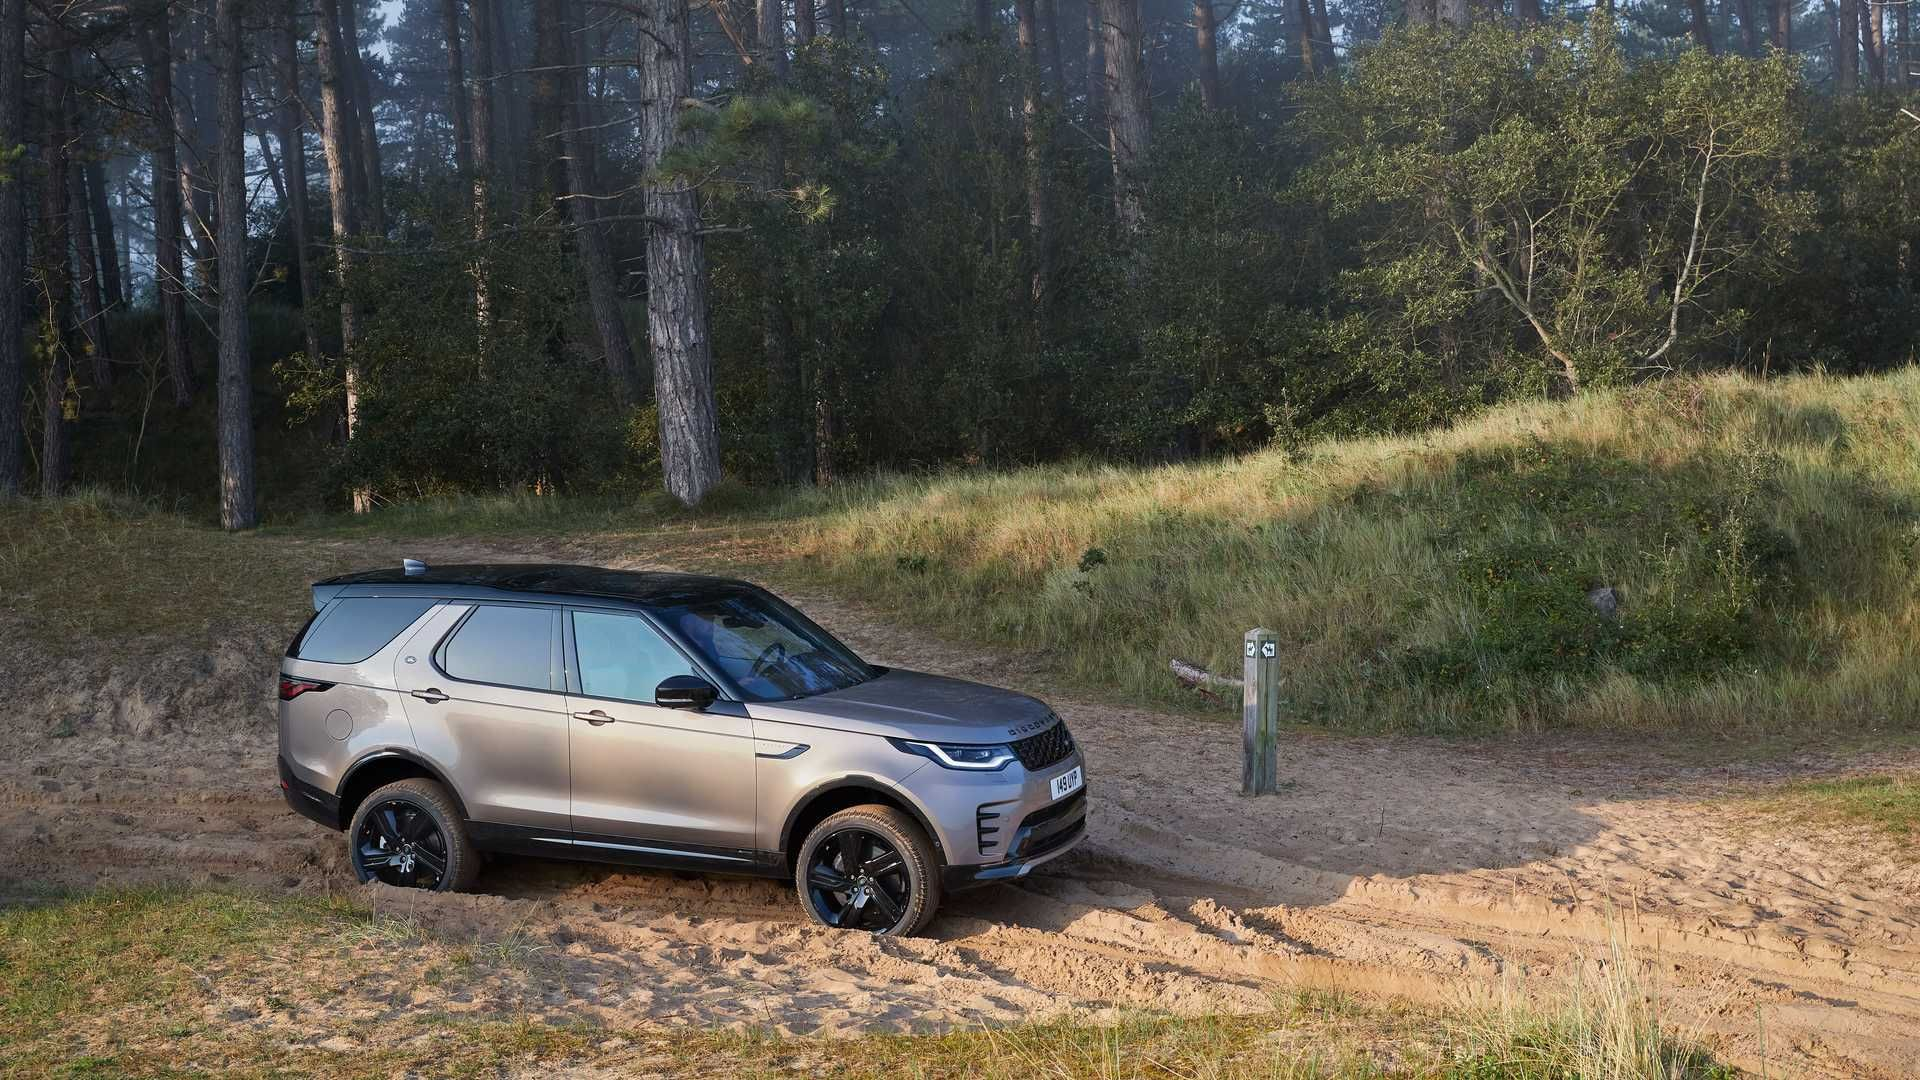 2021-Land-Rover-Discovery-31